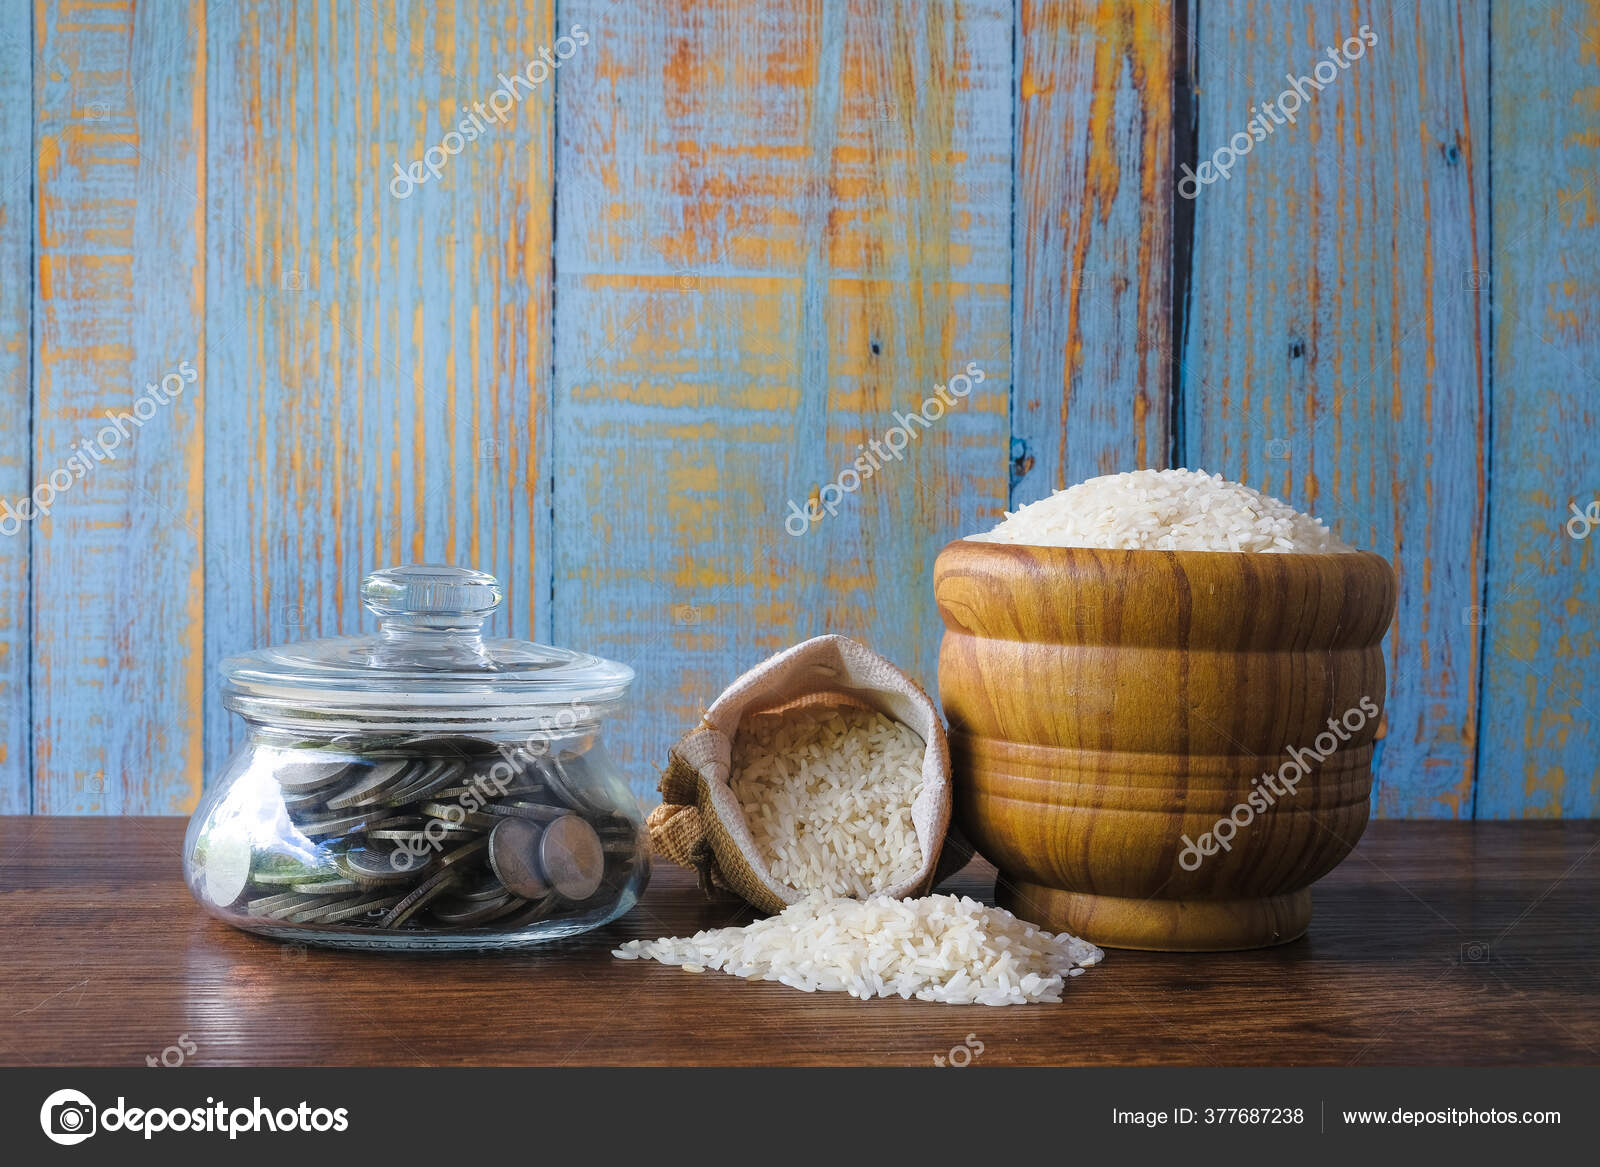 coin stacked rice wooden background zakat concept zakat sharing wealth stock photo c azamiadiputera 377687238 coin stacked rice wooden background zakat concept zakat sharing wealth stock photo c azamiadiputera 377687238